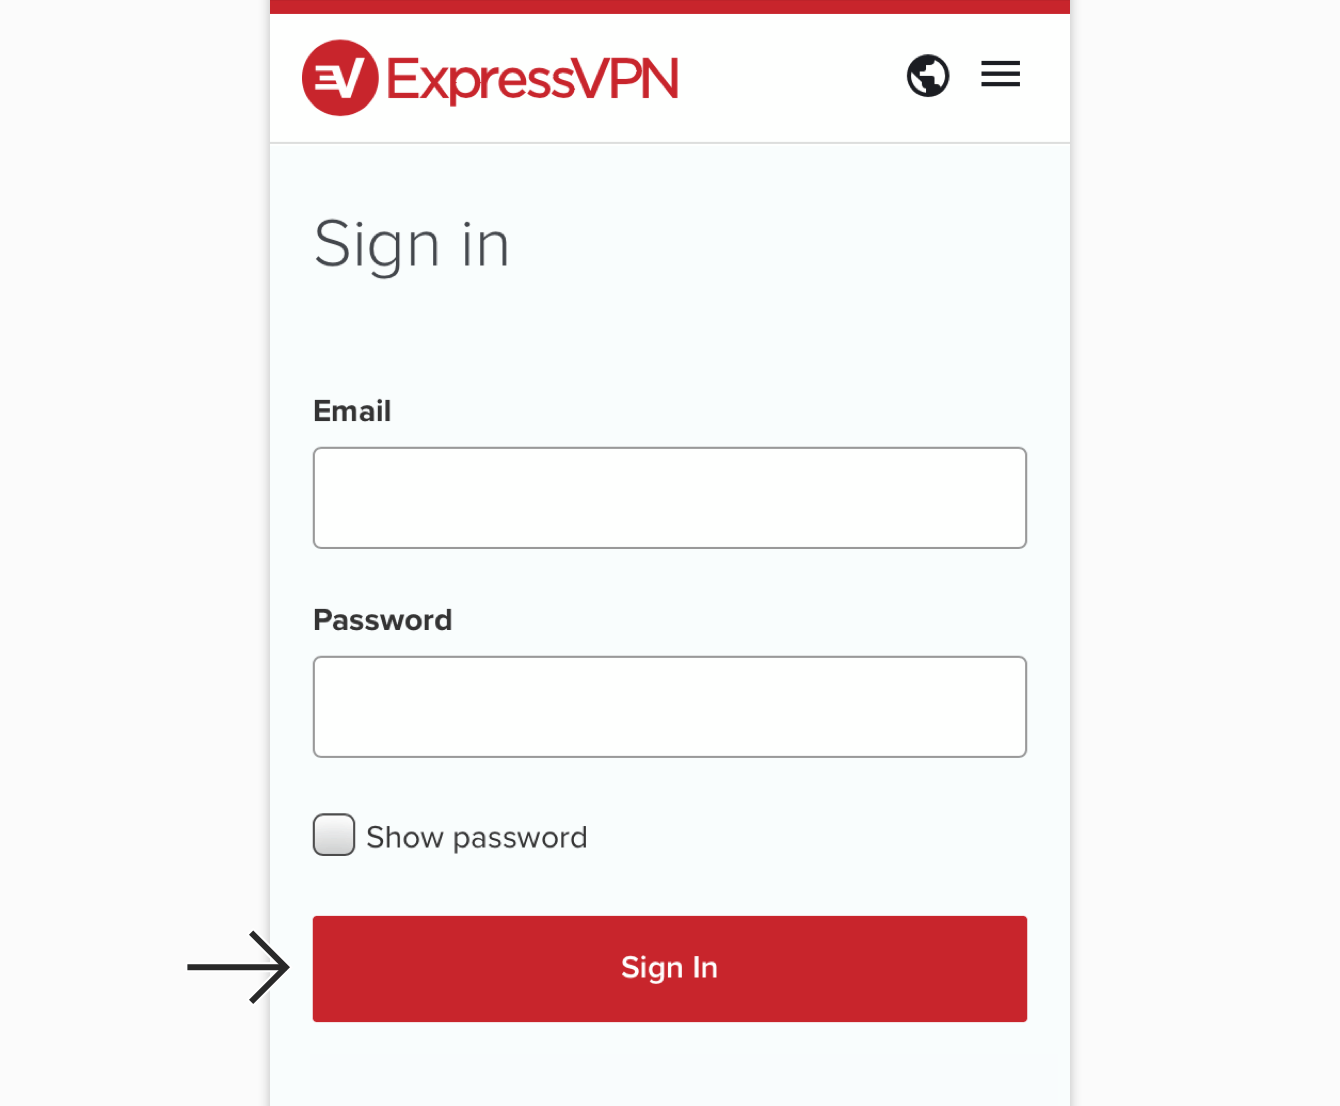 expressvpn sign in